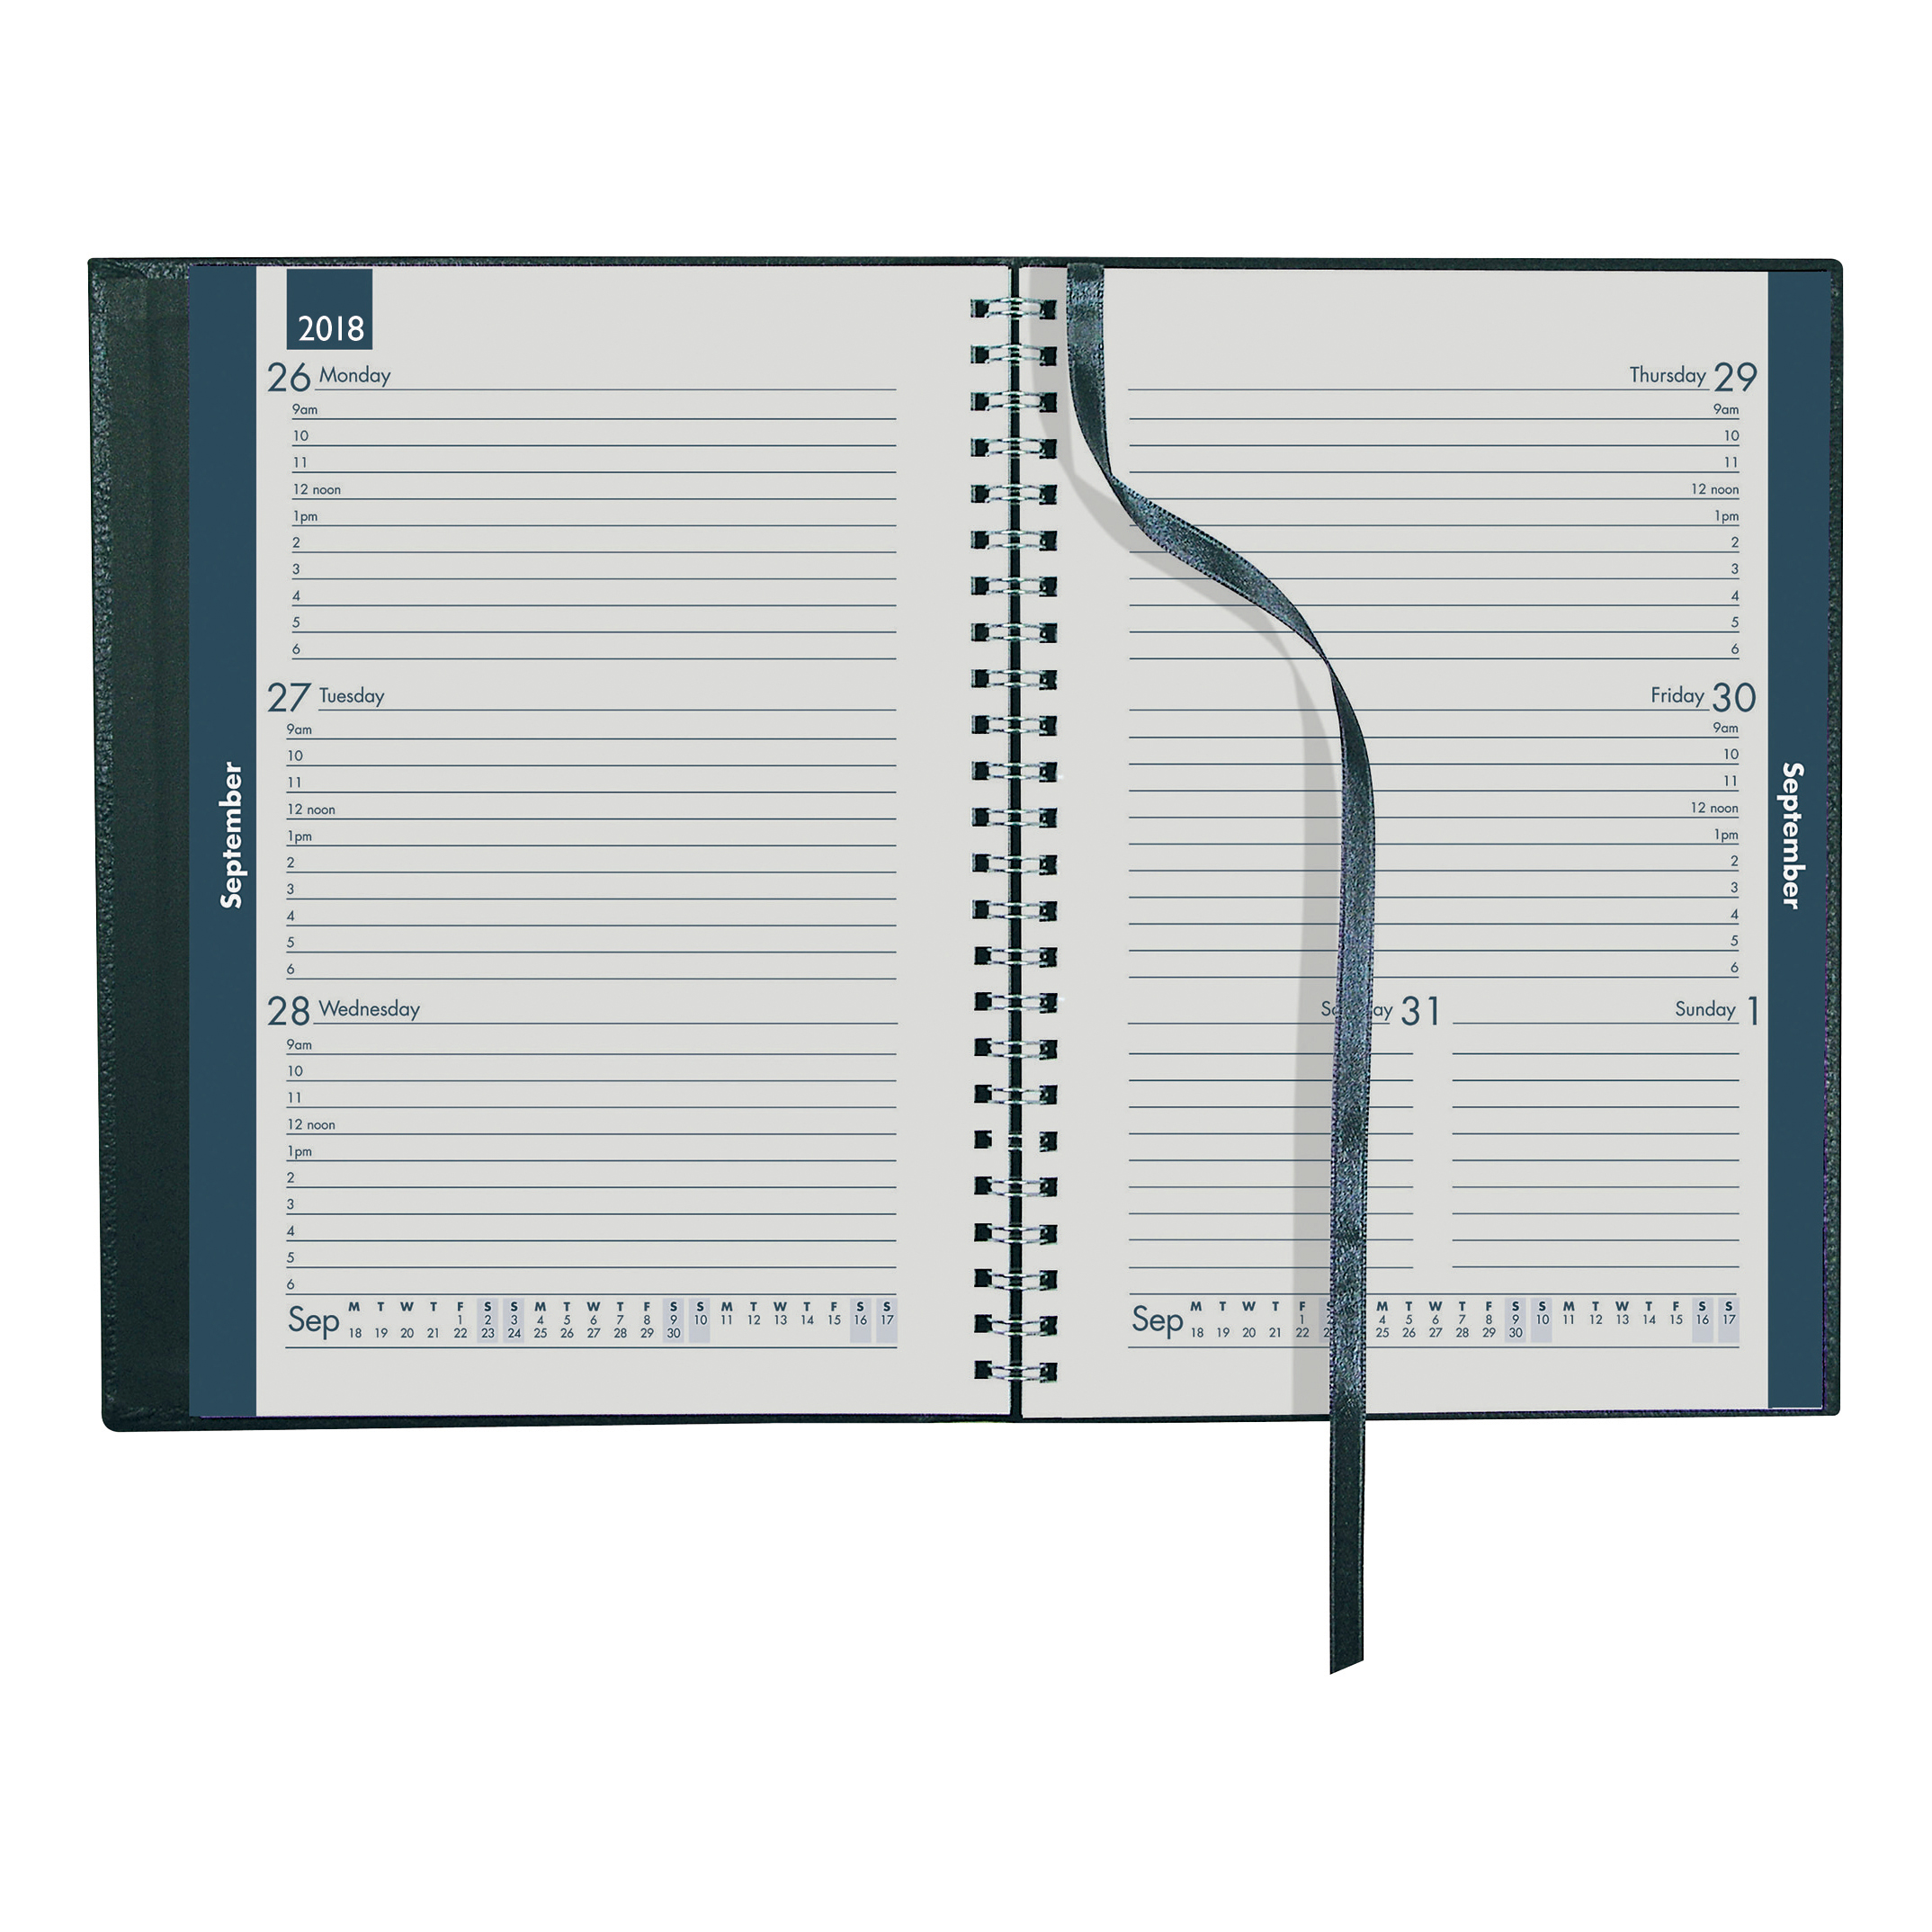 Collins 2018/19 Metro Mid-year Diary Week to View A5 210x148mm Assorted Ref MD53M 2019